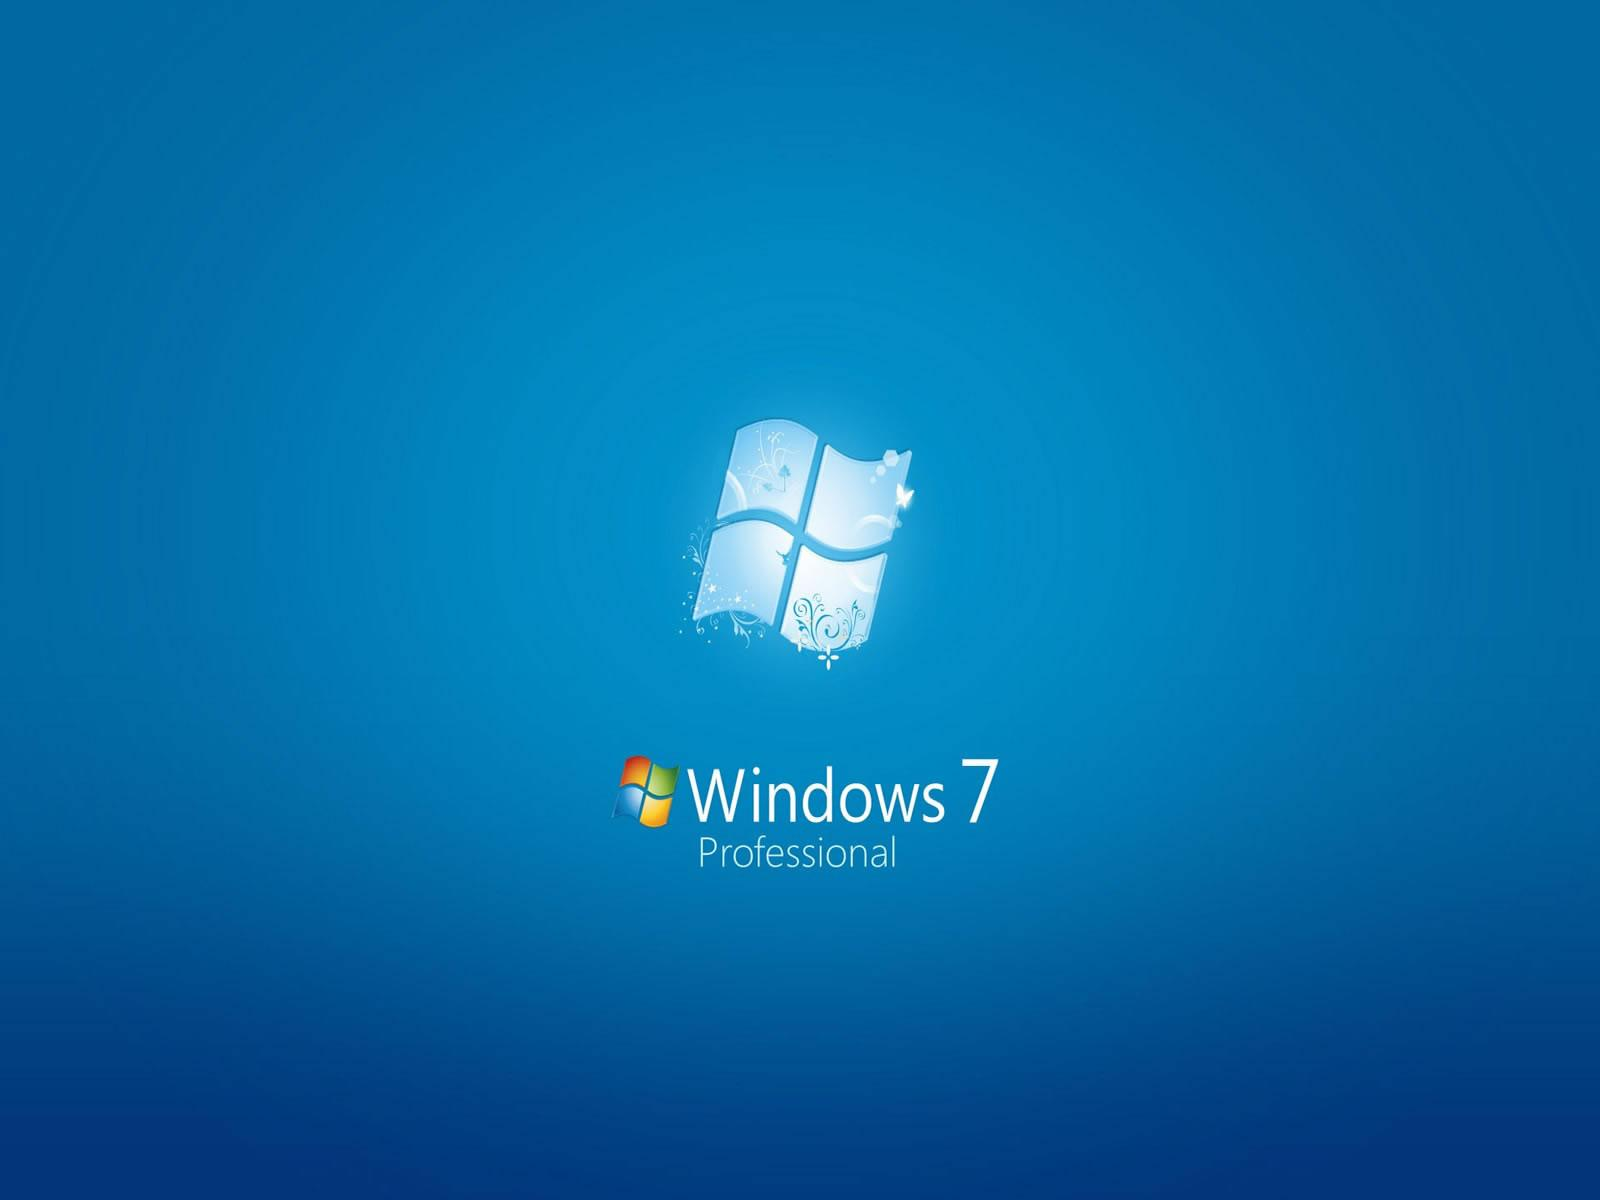 Windows 7 Wallpaper Pro submited images 1600x1200